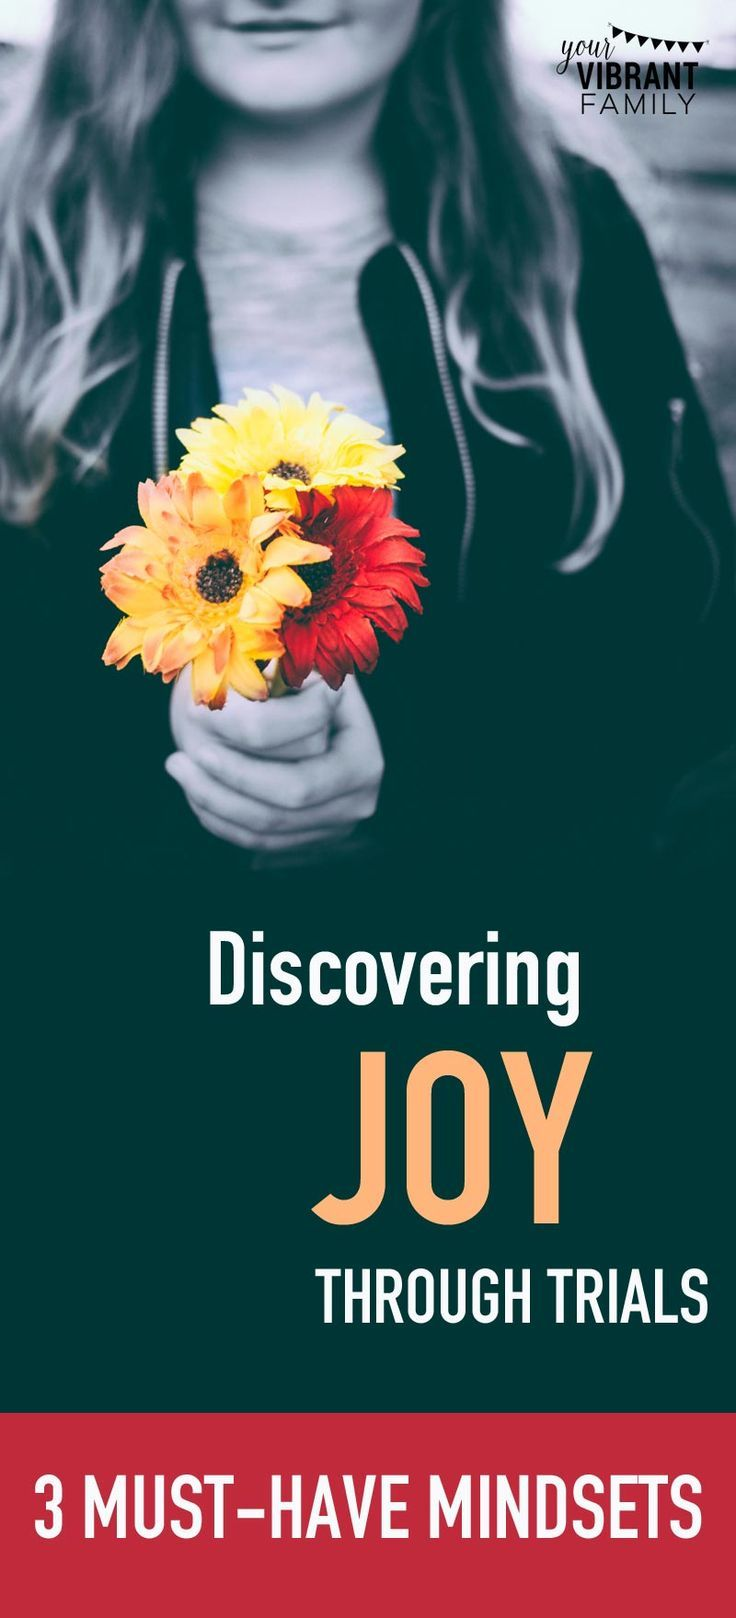 Joy through trials—is it really possible? What are the practical ways we can discover joy, peace and even hope during illness, unemployment, marriage troubles and all of life's biggest challenges? These Christian truths will empower you to find the source of joy in all circumstances.